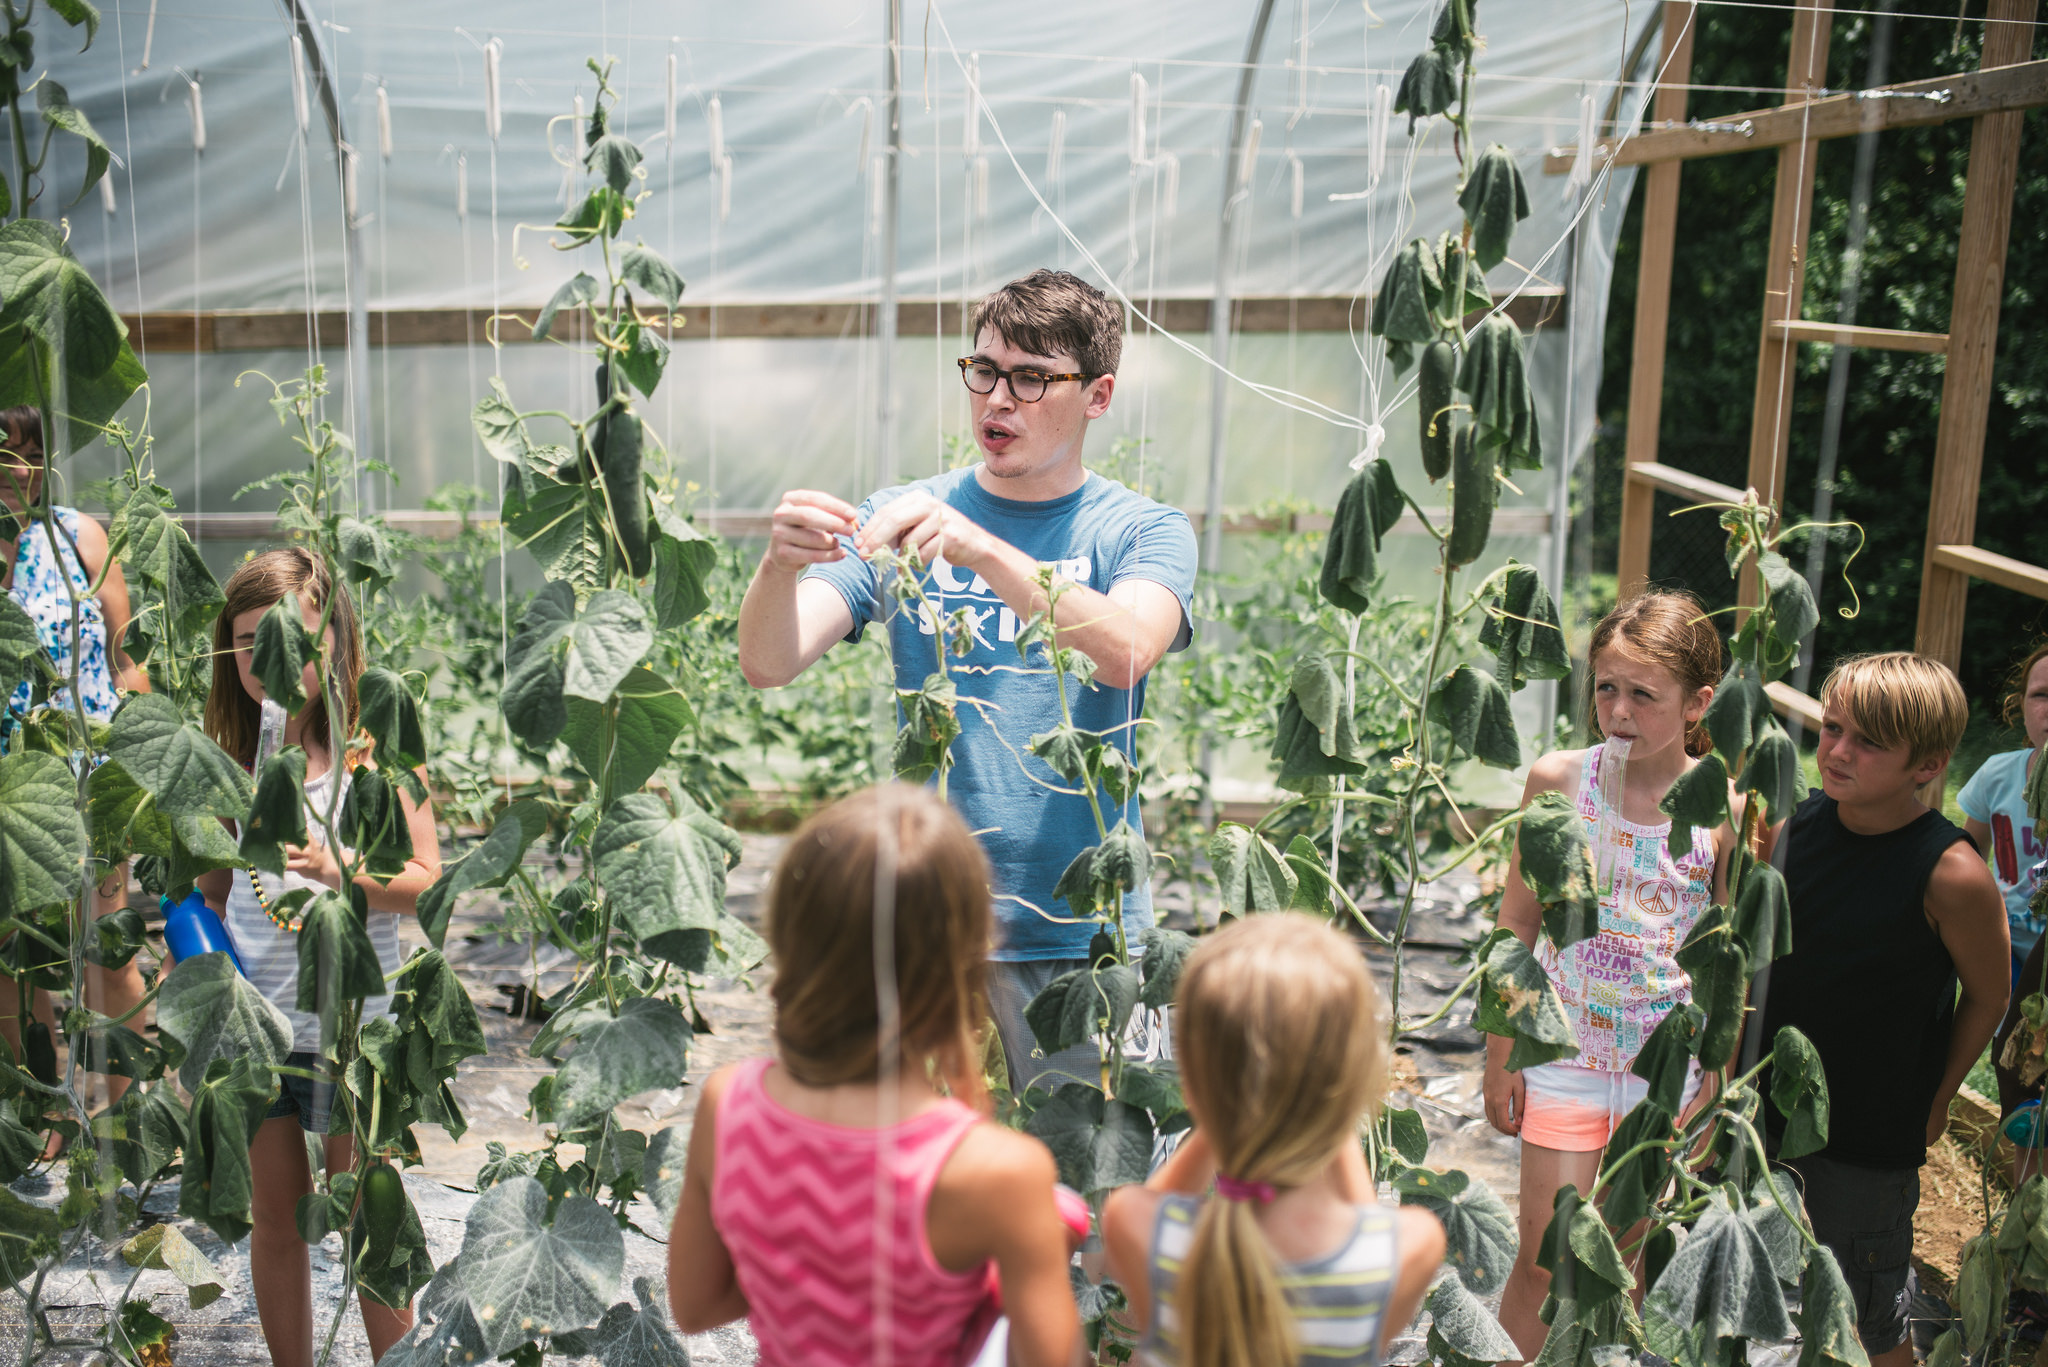 Bryan Sanders, Camp Skillz counselor and consistent community garden volunteer, explains pole beans to campers who get to work in the garden throughout the summer.